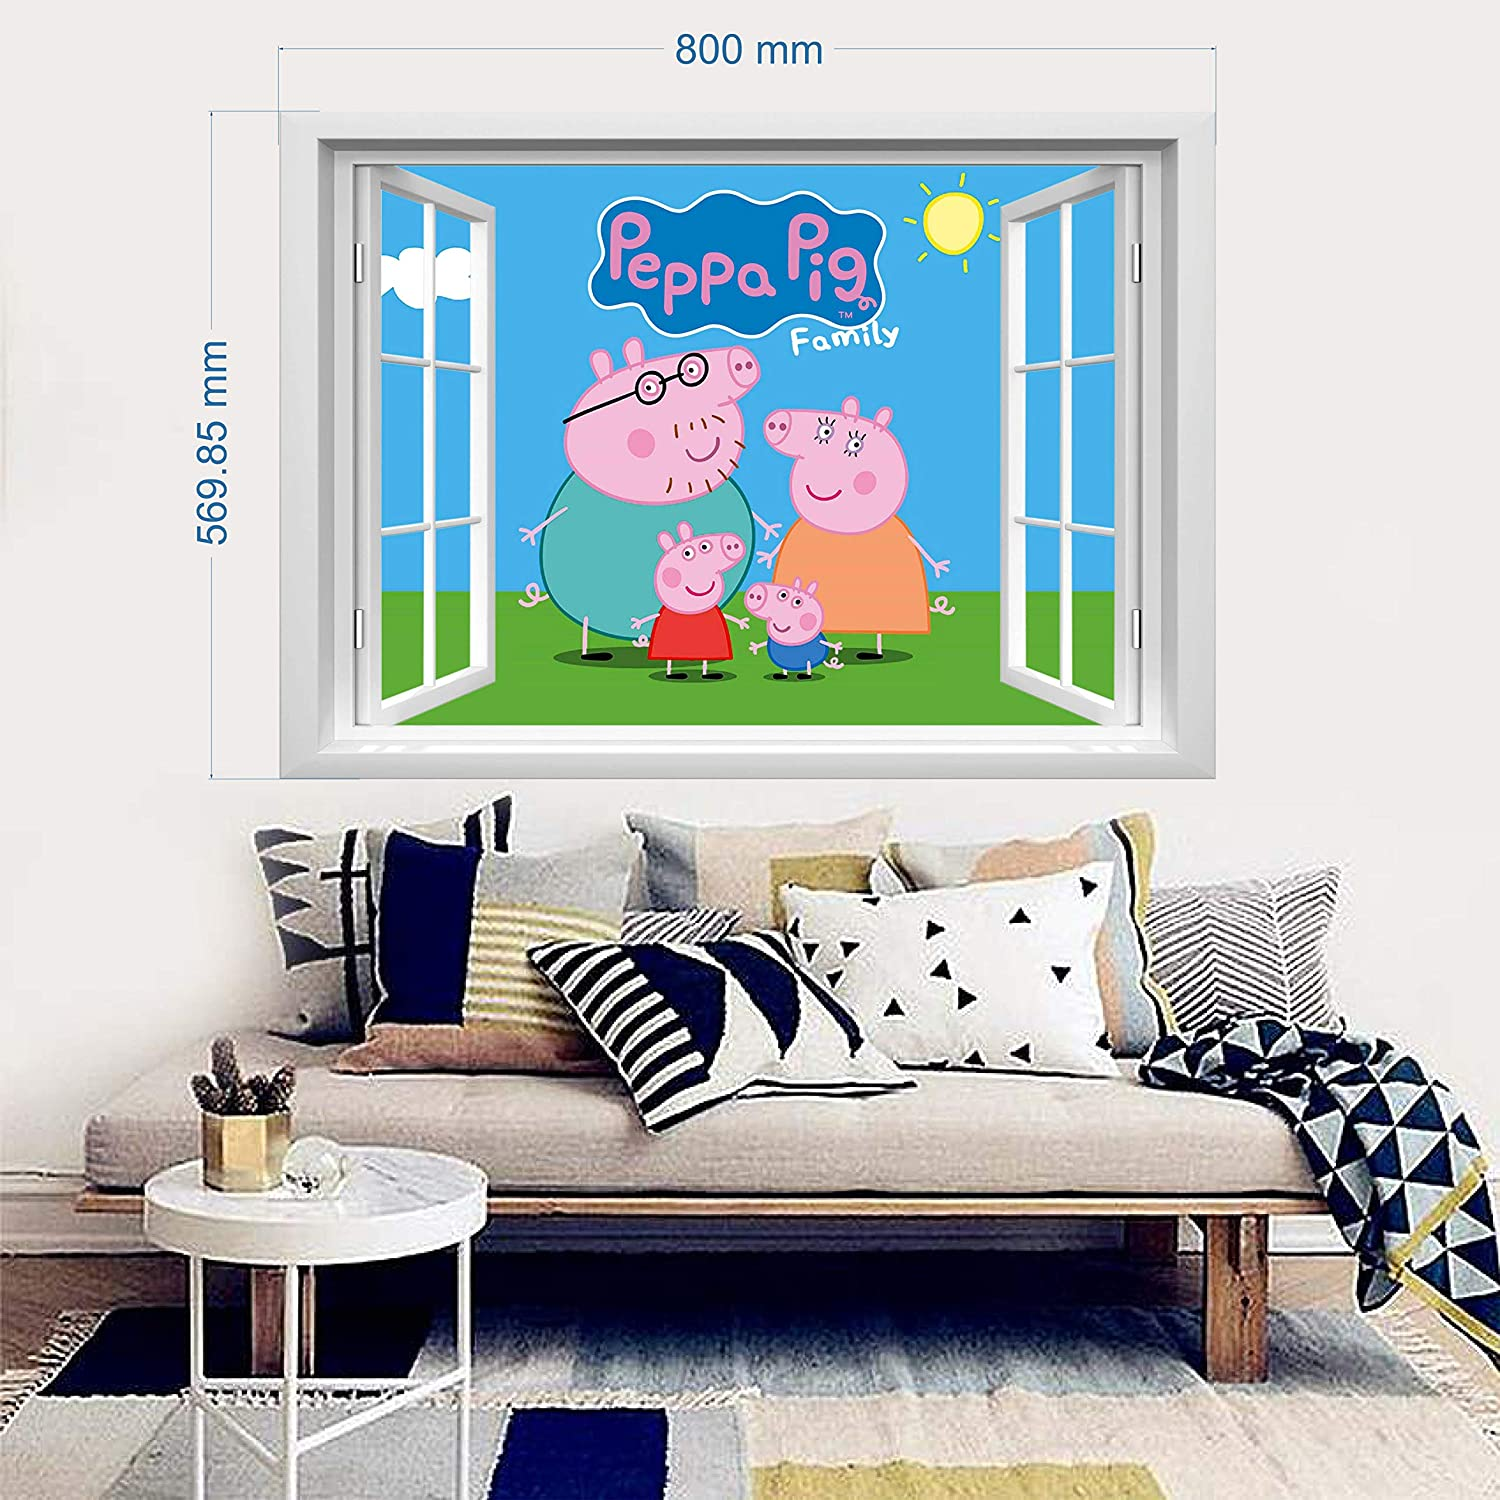 infans PEPPA PIG wall stickers Peppa Pig Family wall murals peppa pig bedroom boys girls wall decals